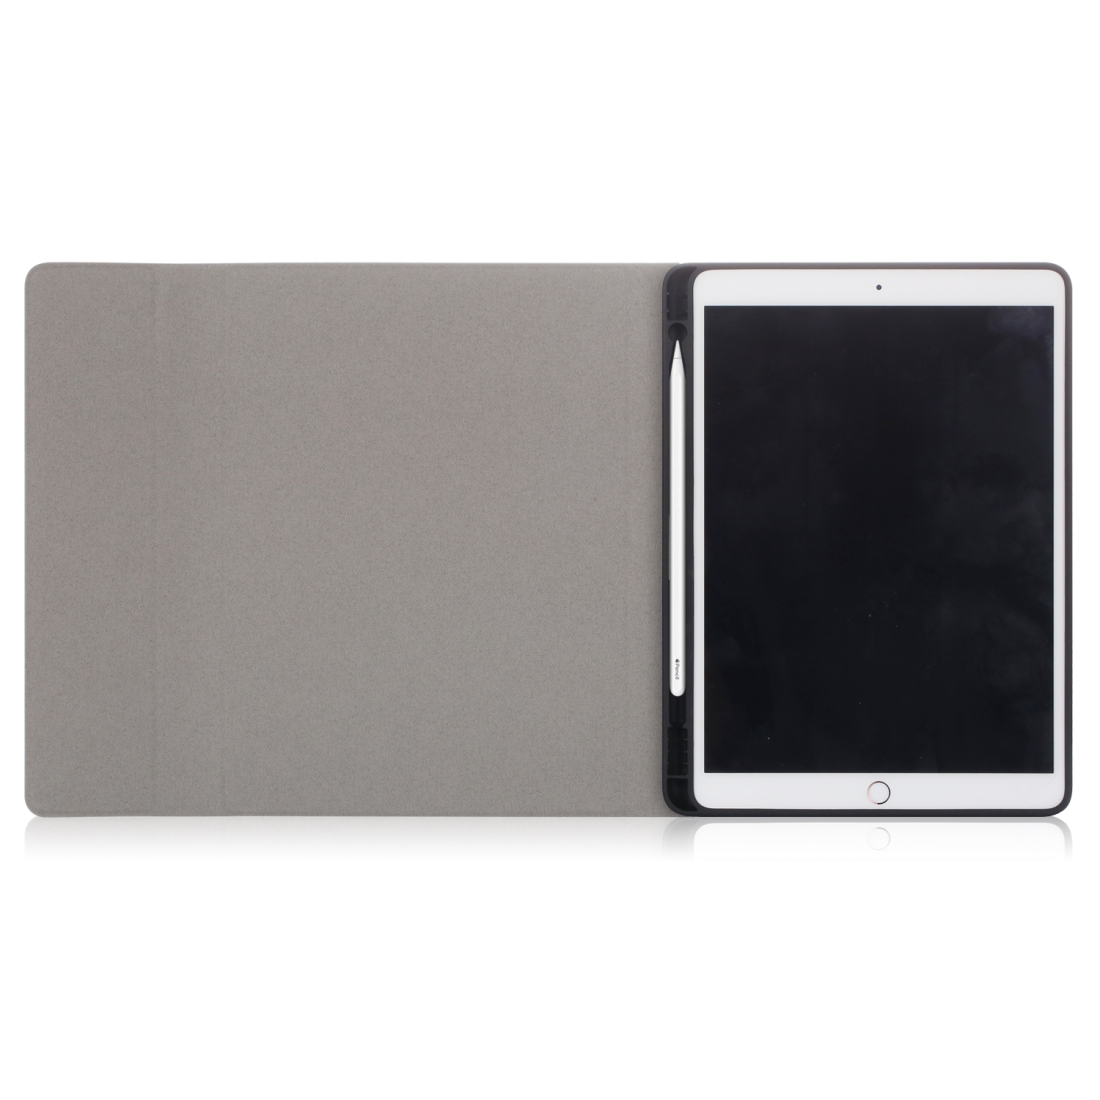 iPad Air 2 Case For iPad Air /Air 2 (2019), Leather Case Without Keyboard (Dark Blue)